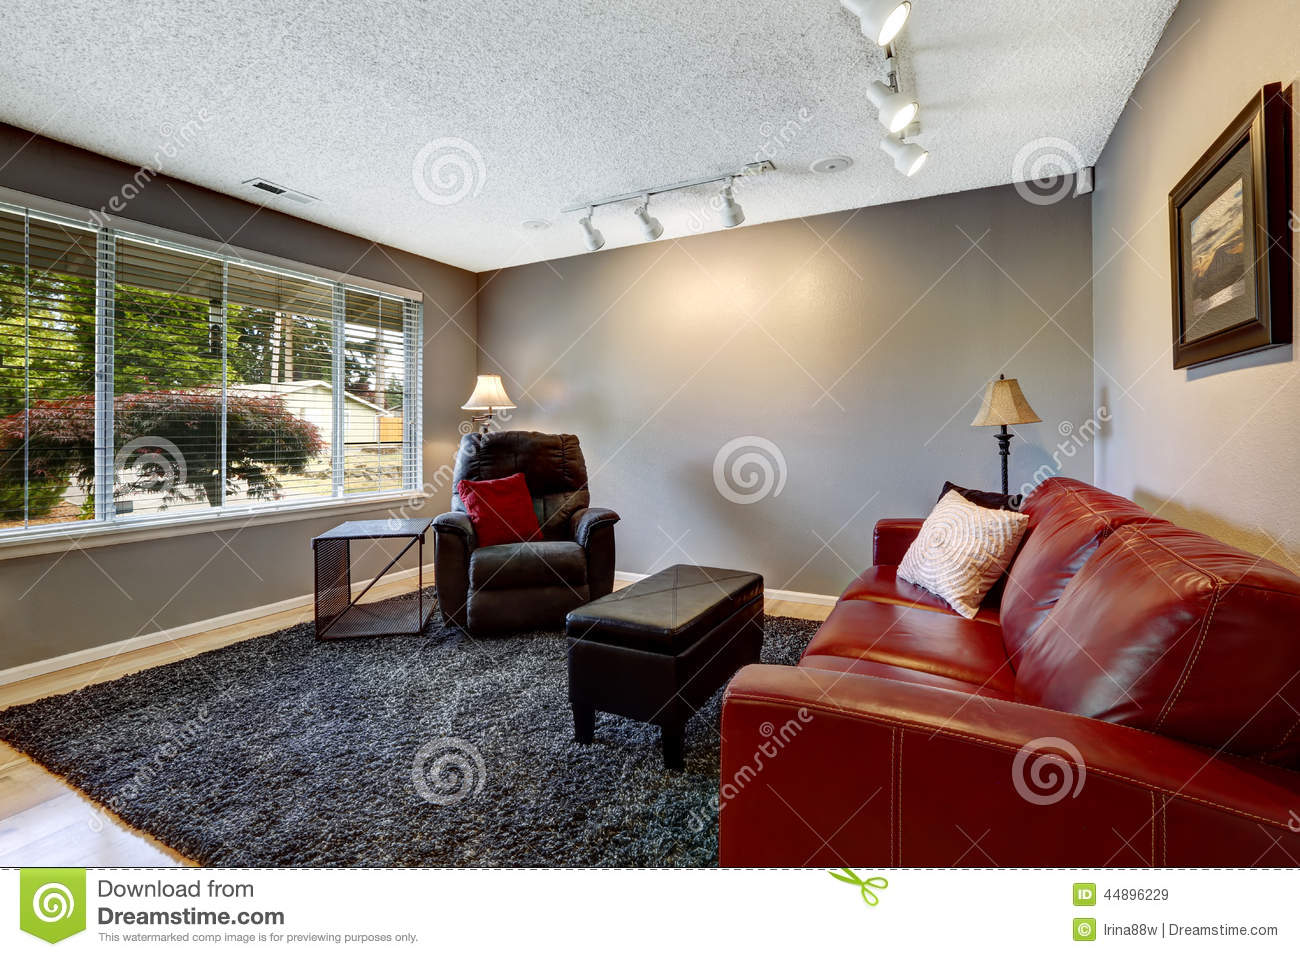 Room in grey color with bright red sofa stock image Red and grey sofa